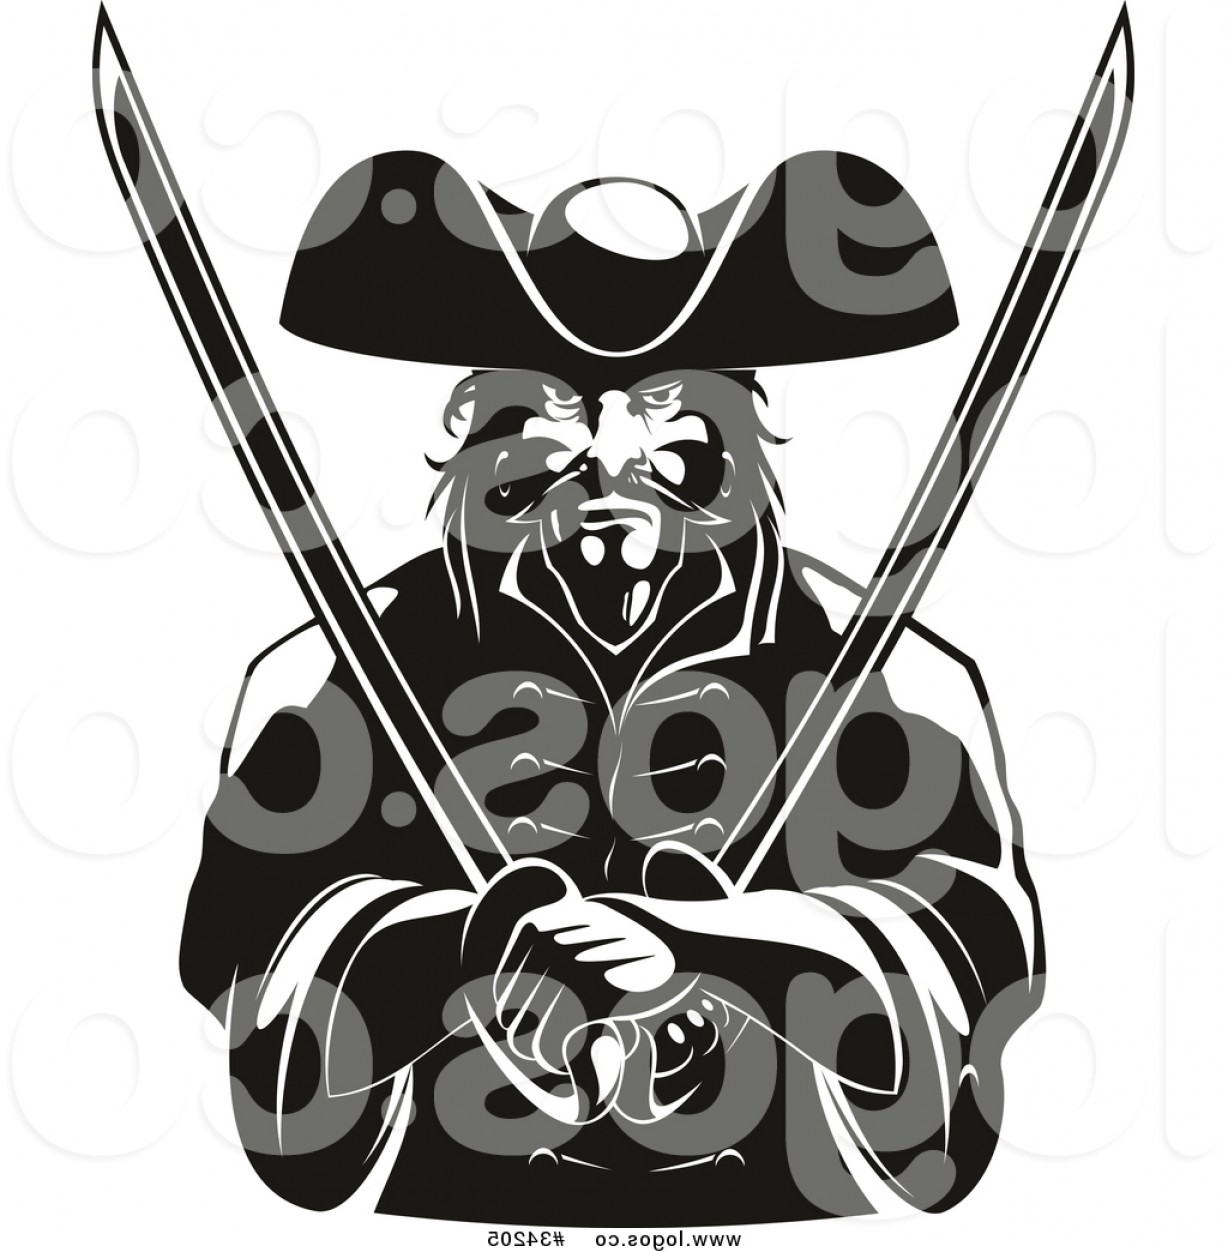 Pirate Swords Crossed Vectors: Royalty Free Vector Logo Of A Pirate Posing With Swords Crossed Over His Chest Black And White Version By Vector Tradition Sm